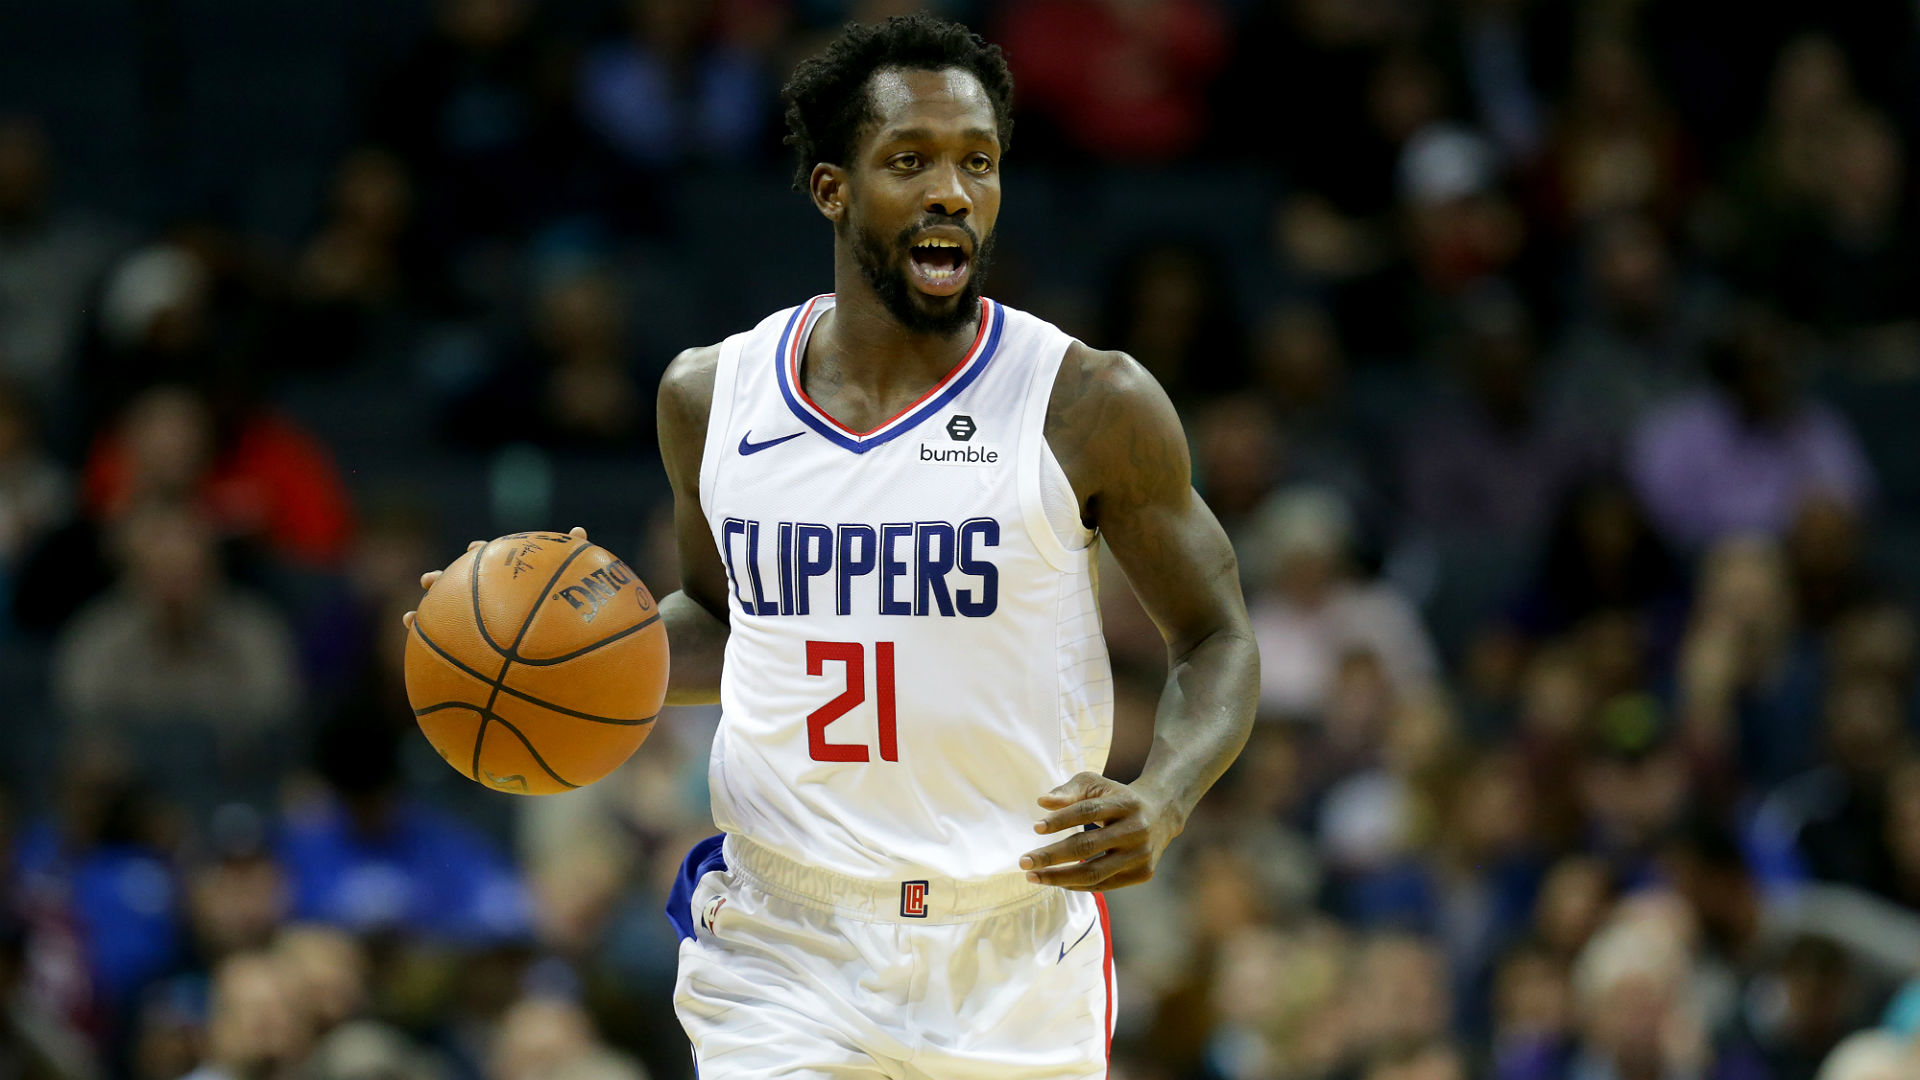 NBA free agency: Patrick Beverley says he's open to signing with Bulls